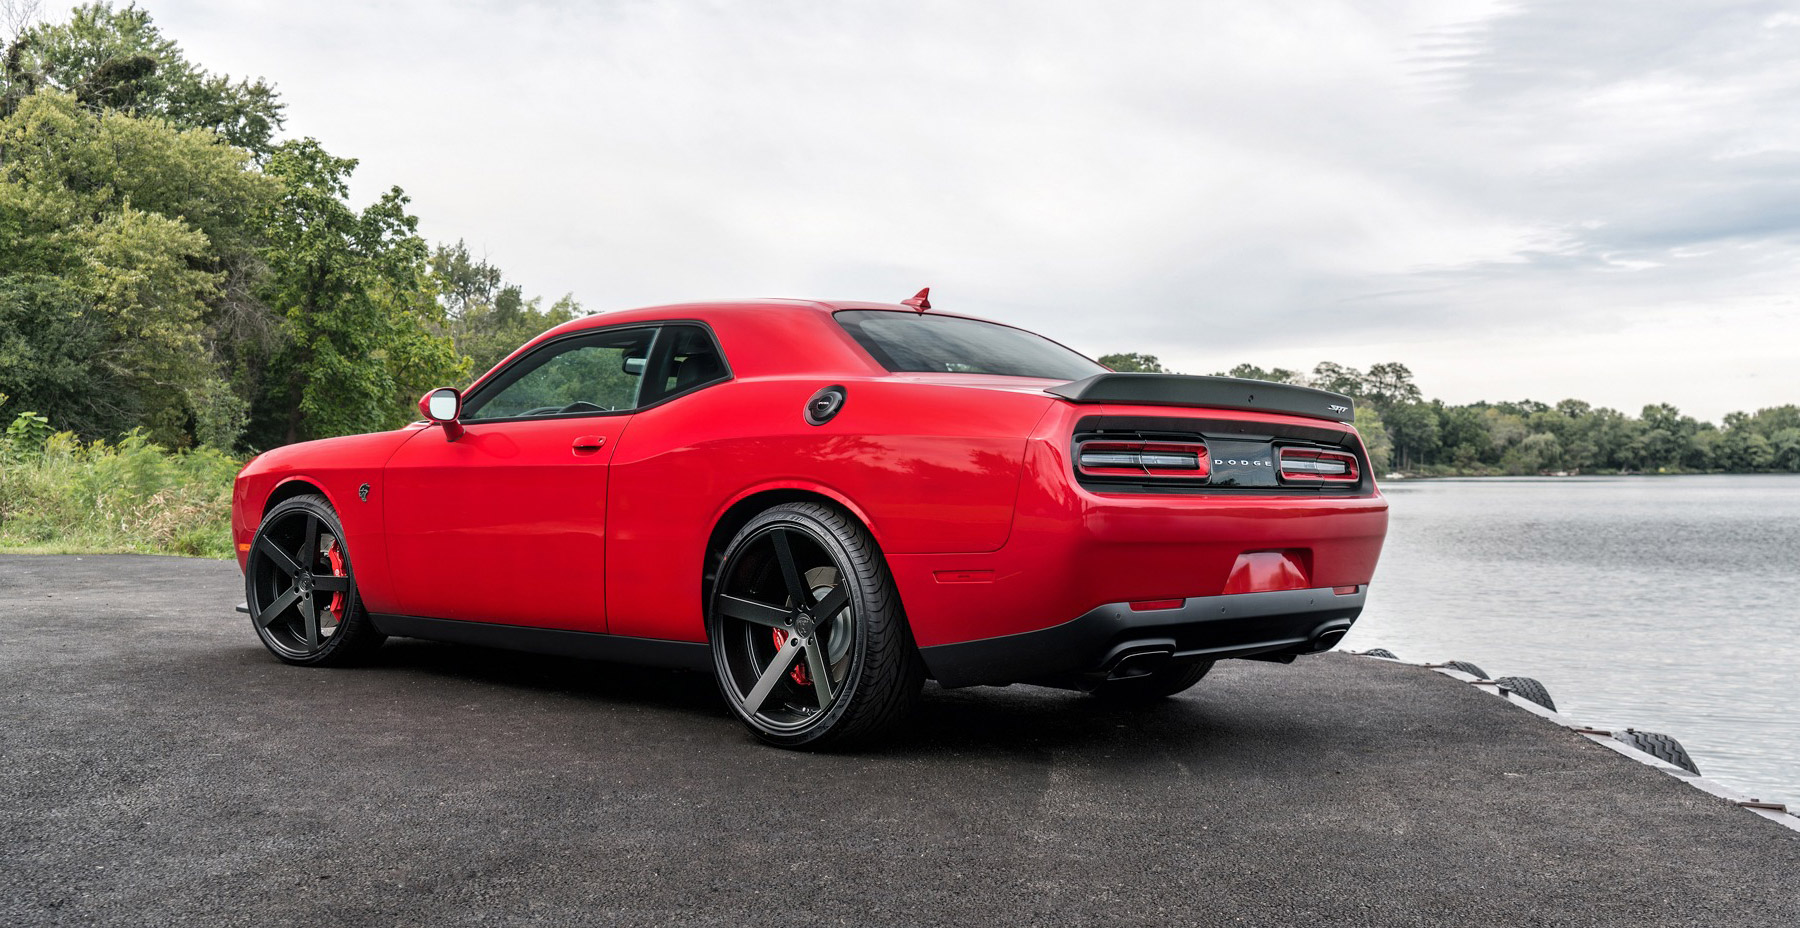 Red Dodge Challenger Hellcat x Rohana RC22 Wheels (Finished in Matte Black)